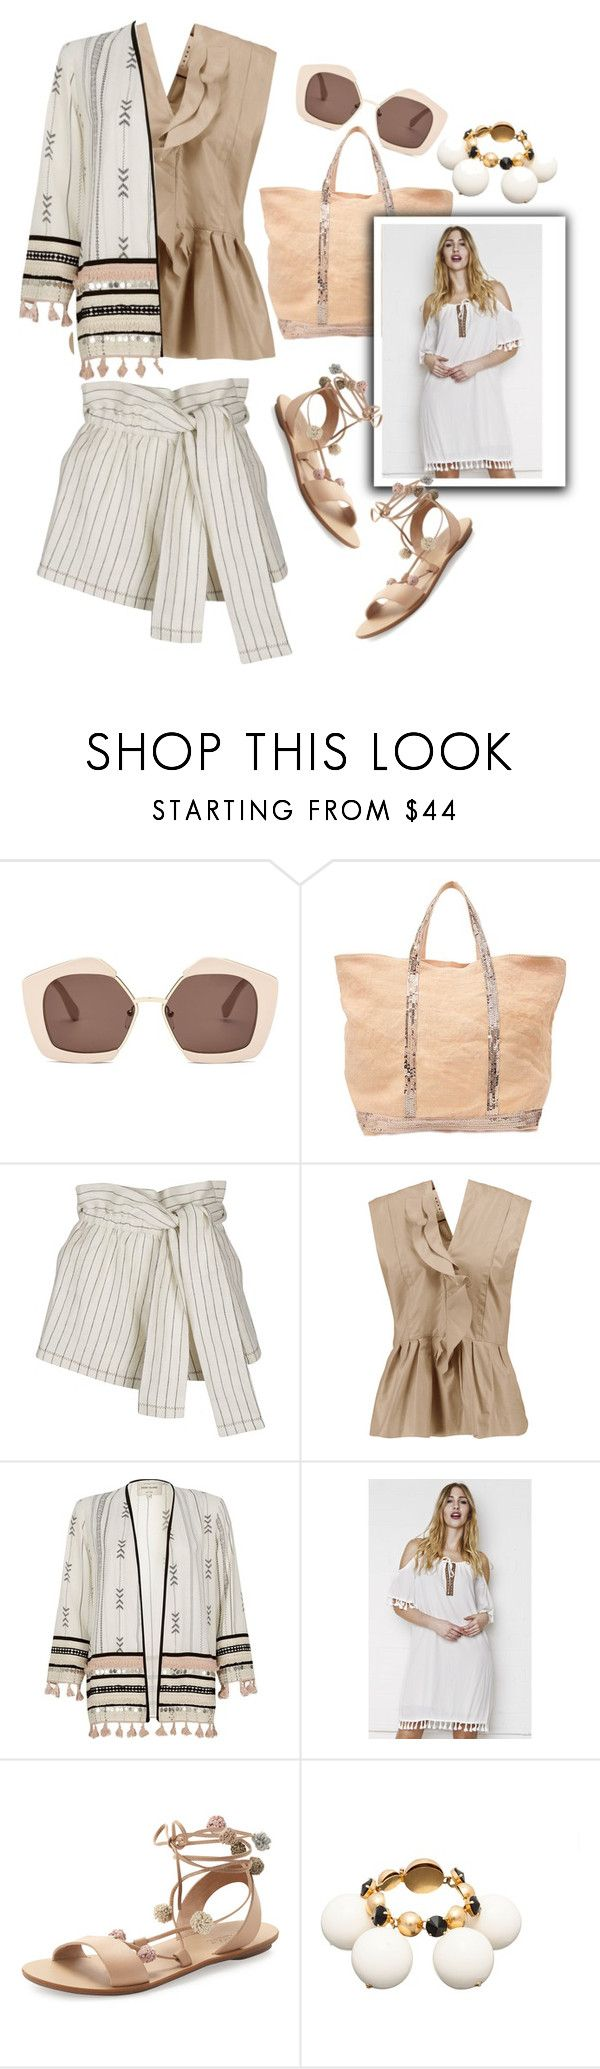 """Pom Poms"" by grinevagh ❤ liked on Polyvore featuring Marni, Vanessa Bruno, 3.1 Phillip Lim, River Island, Liquor n Poker and Loeffler Randall"